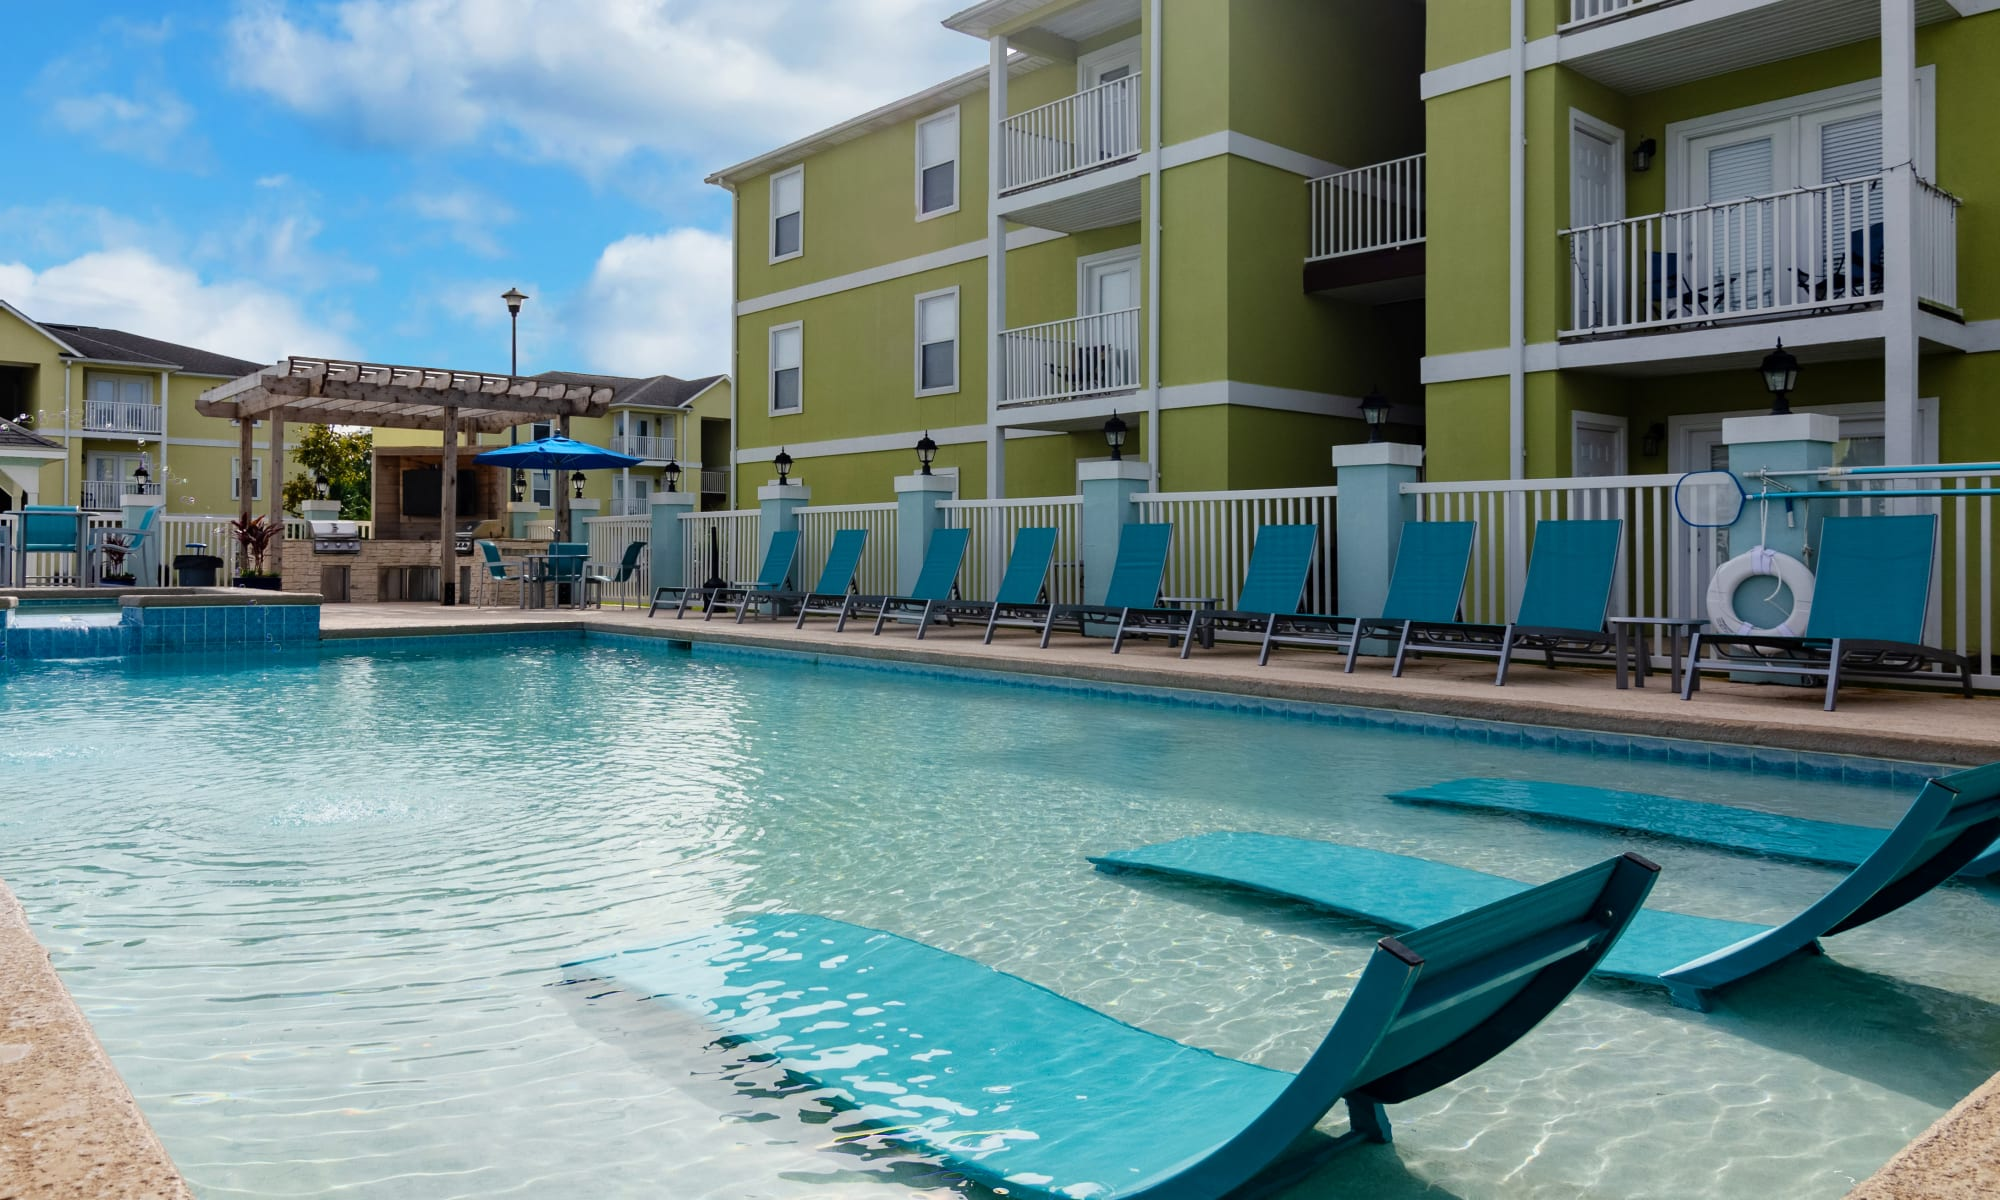 Saint Martin Biloxi Ms Apartments For Rent Grand Biscayne